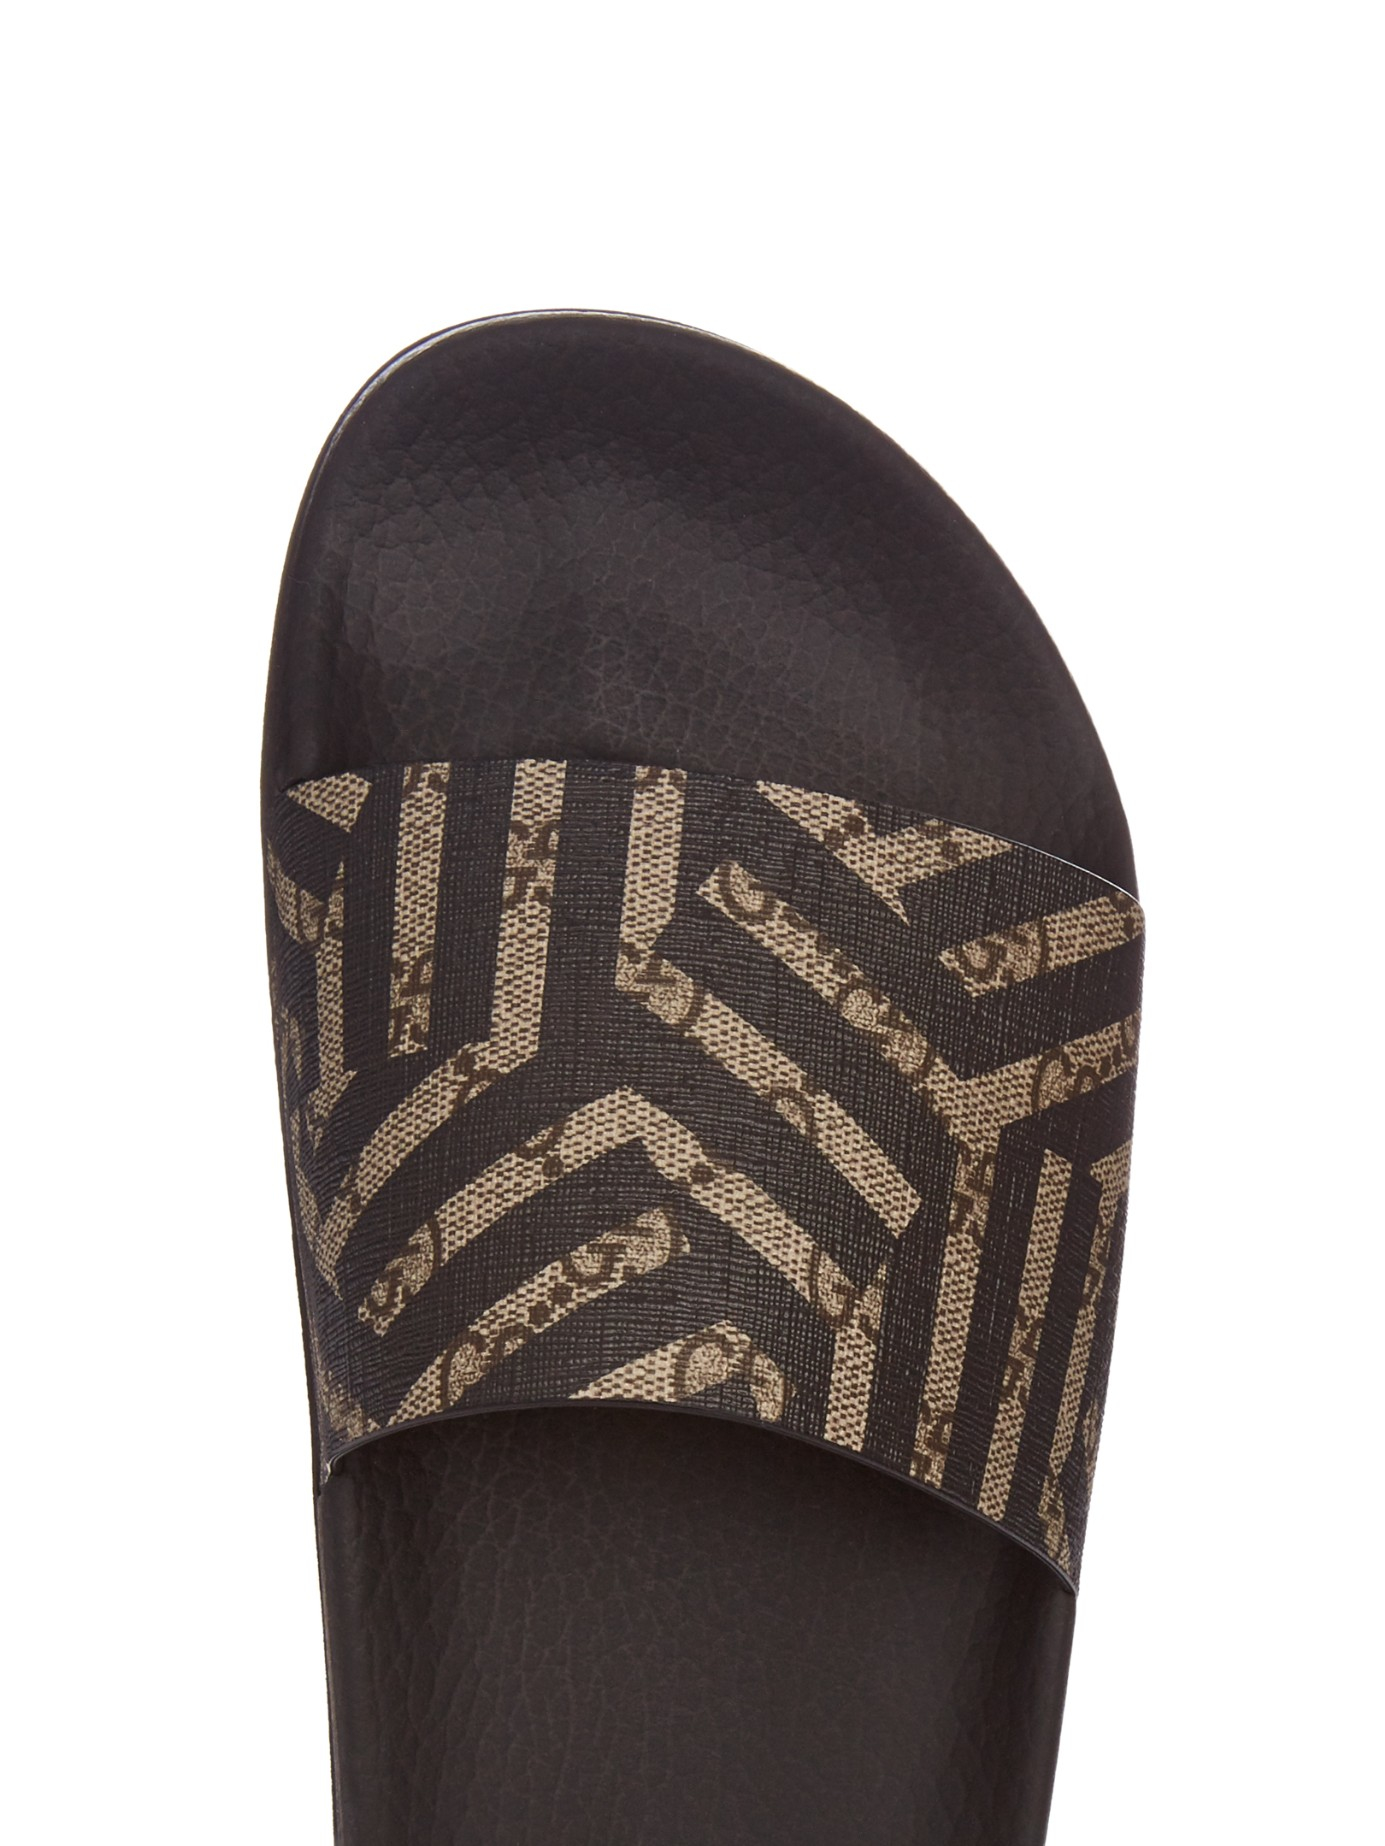 Lyst Gucci Caleido Print Pool Slides In Brown For Men